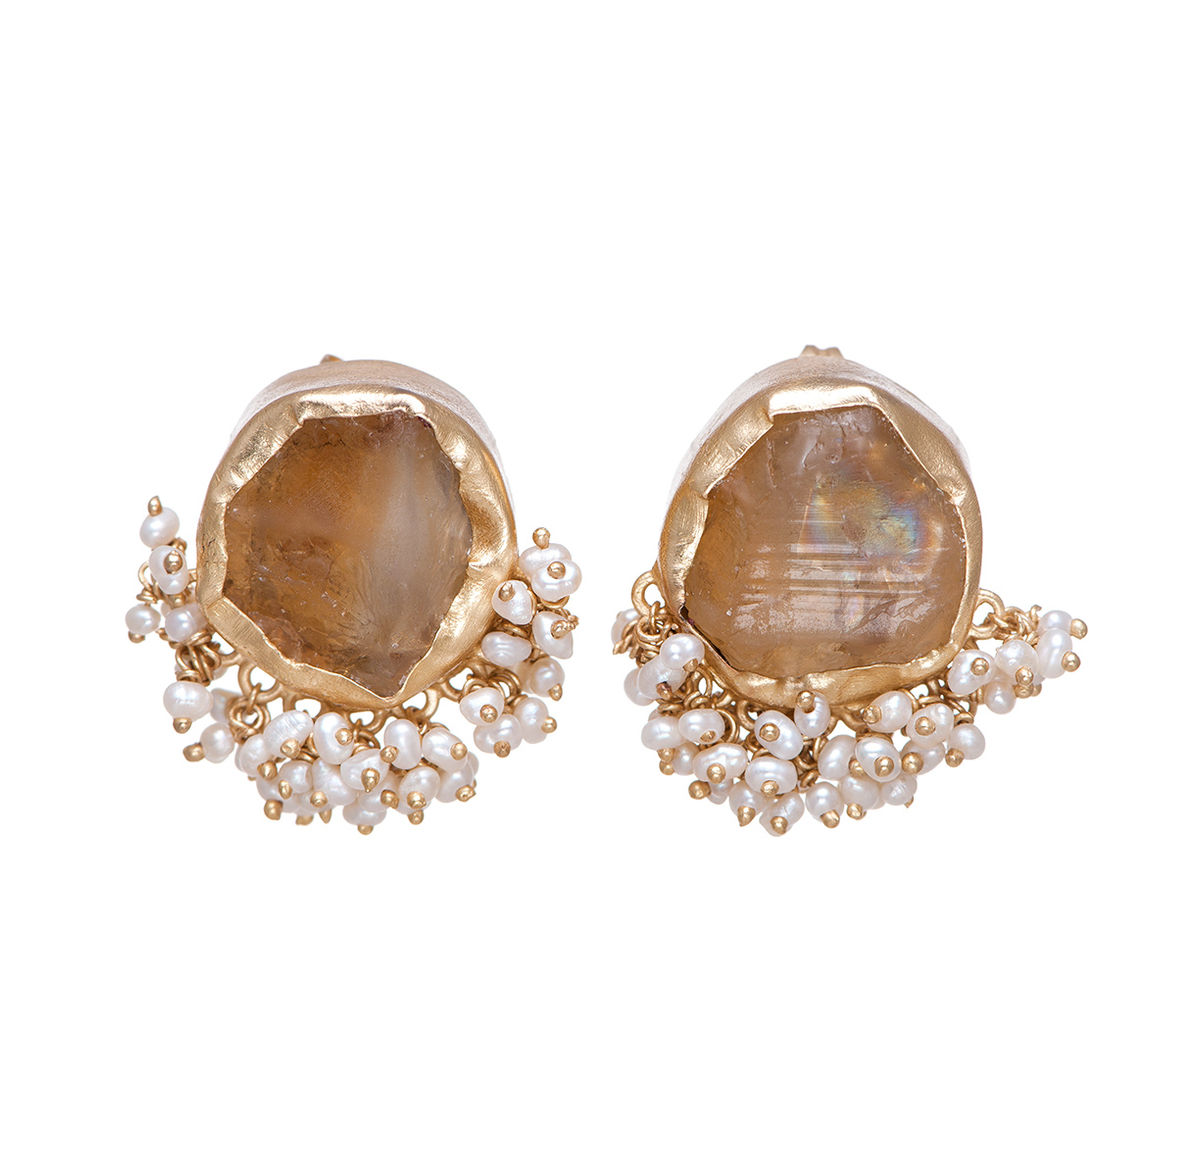 jewelry overstock kabella gold earrings round product shipping stud citrine watches today yellow free